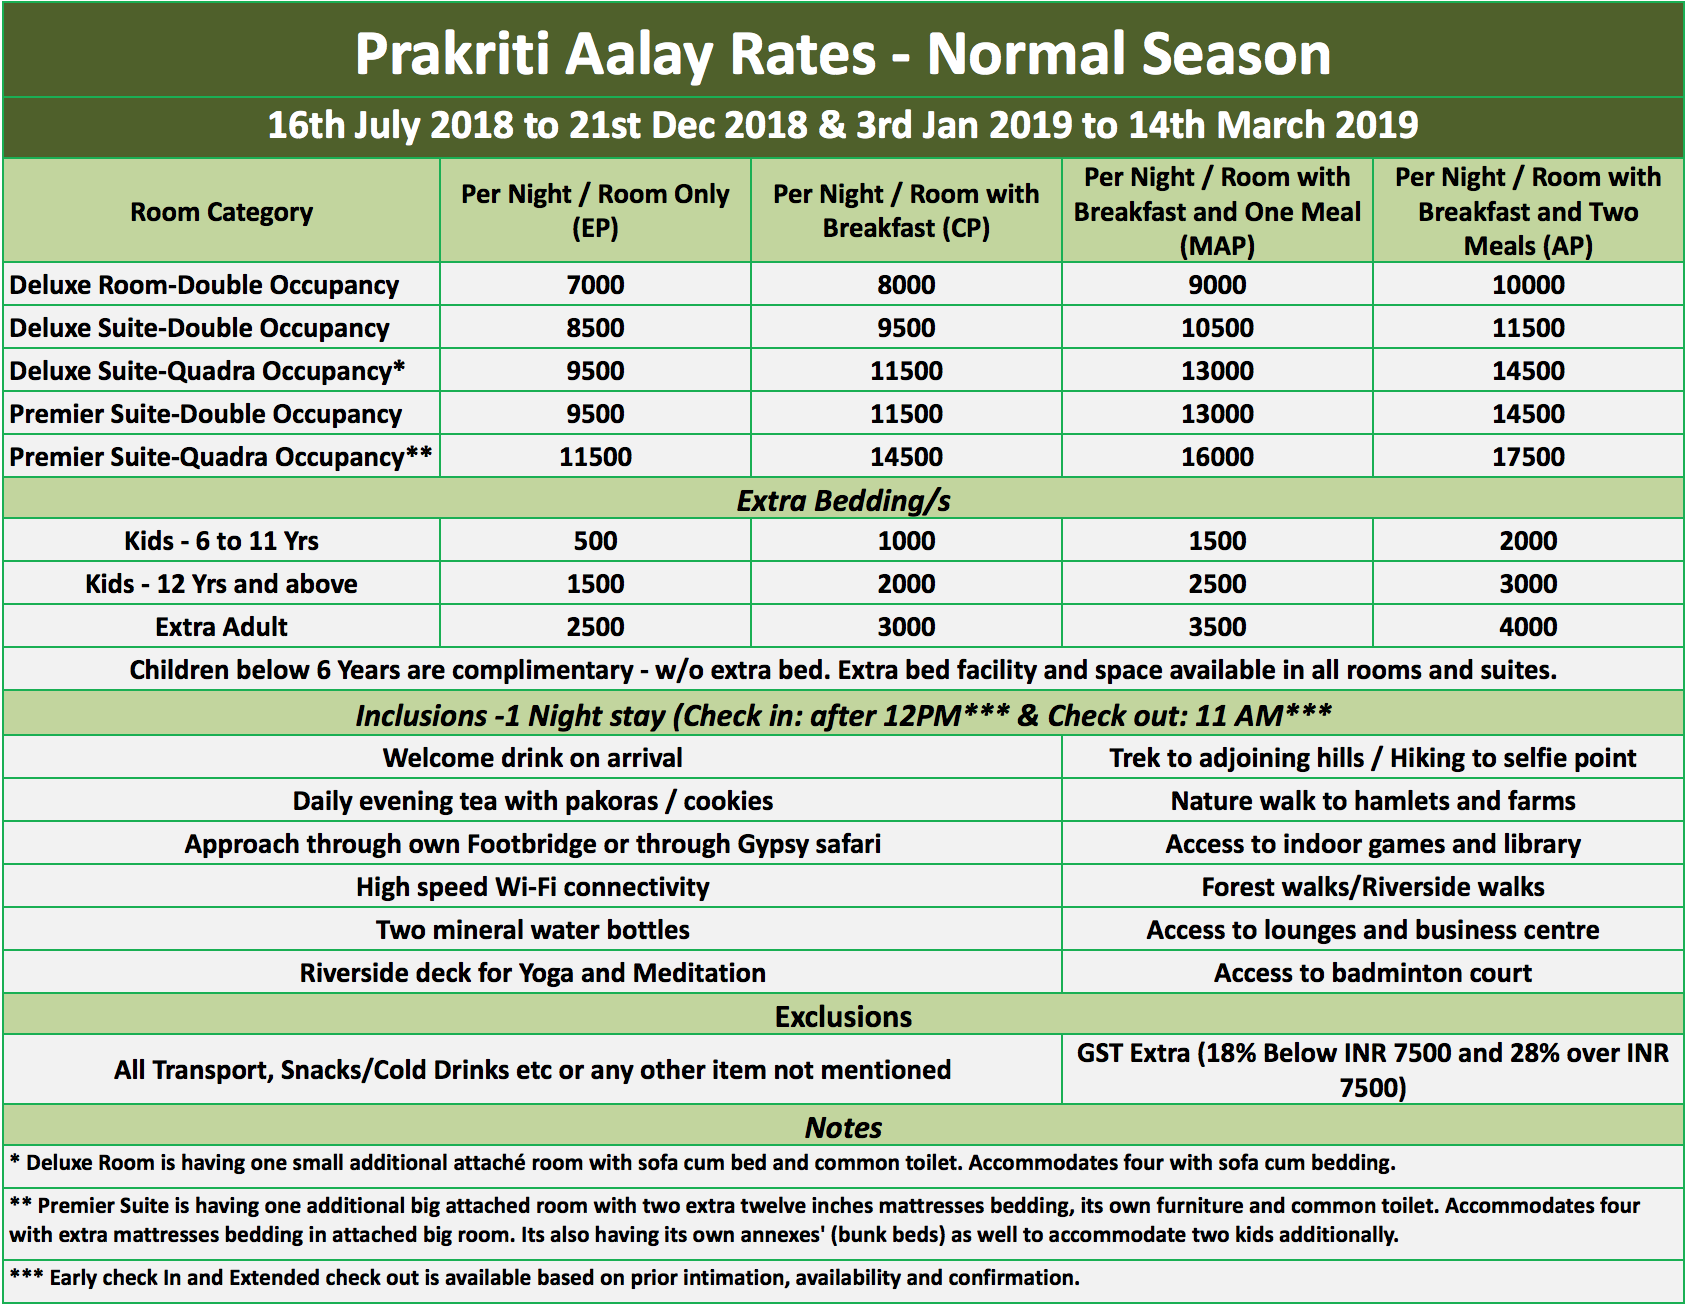 Normal Season Rates : Prakrity Aalay